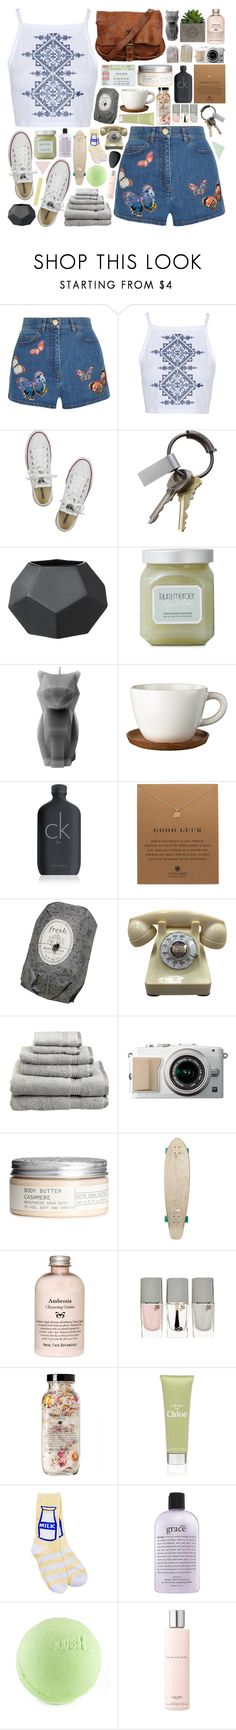 """""""Compass"""" by lucidmoon ❤ liked on Polyvore featuring Valentino, Topshop, Converse, CB2, Laura Mercier, PyroPet, Höganäs Ceramic, Calvin Klein, Dogeared and Fresh"""